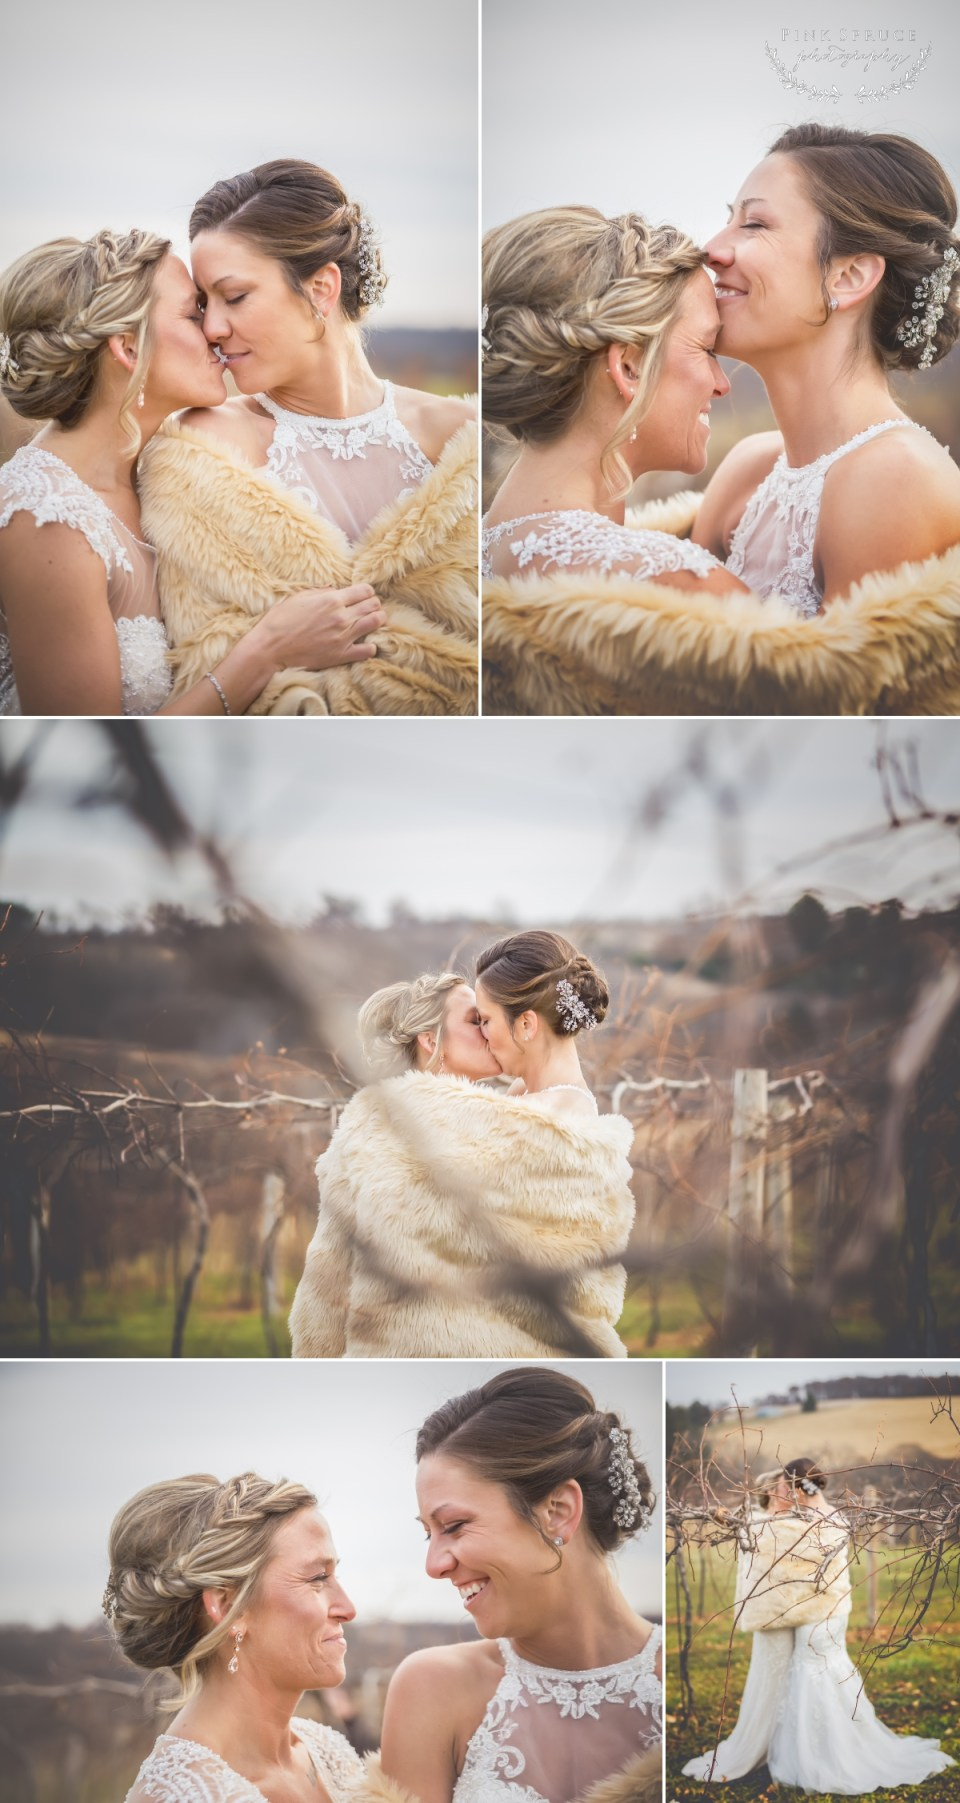 Rustic Winter Wedding at Pedretti's Party Barn, Viroqua, WI | Photography by: Pink Spruce Photography www.pinksprucephotography.com | Lesbian Wedding, Same Sex Wedding, Wisconsin Wedding, Vernon Vineyards